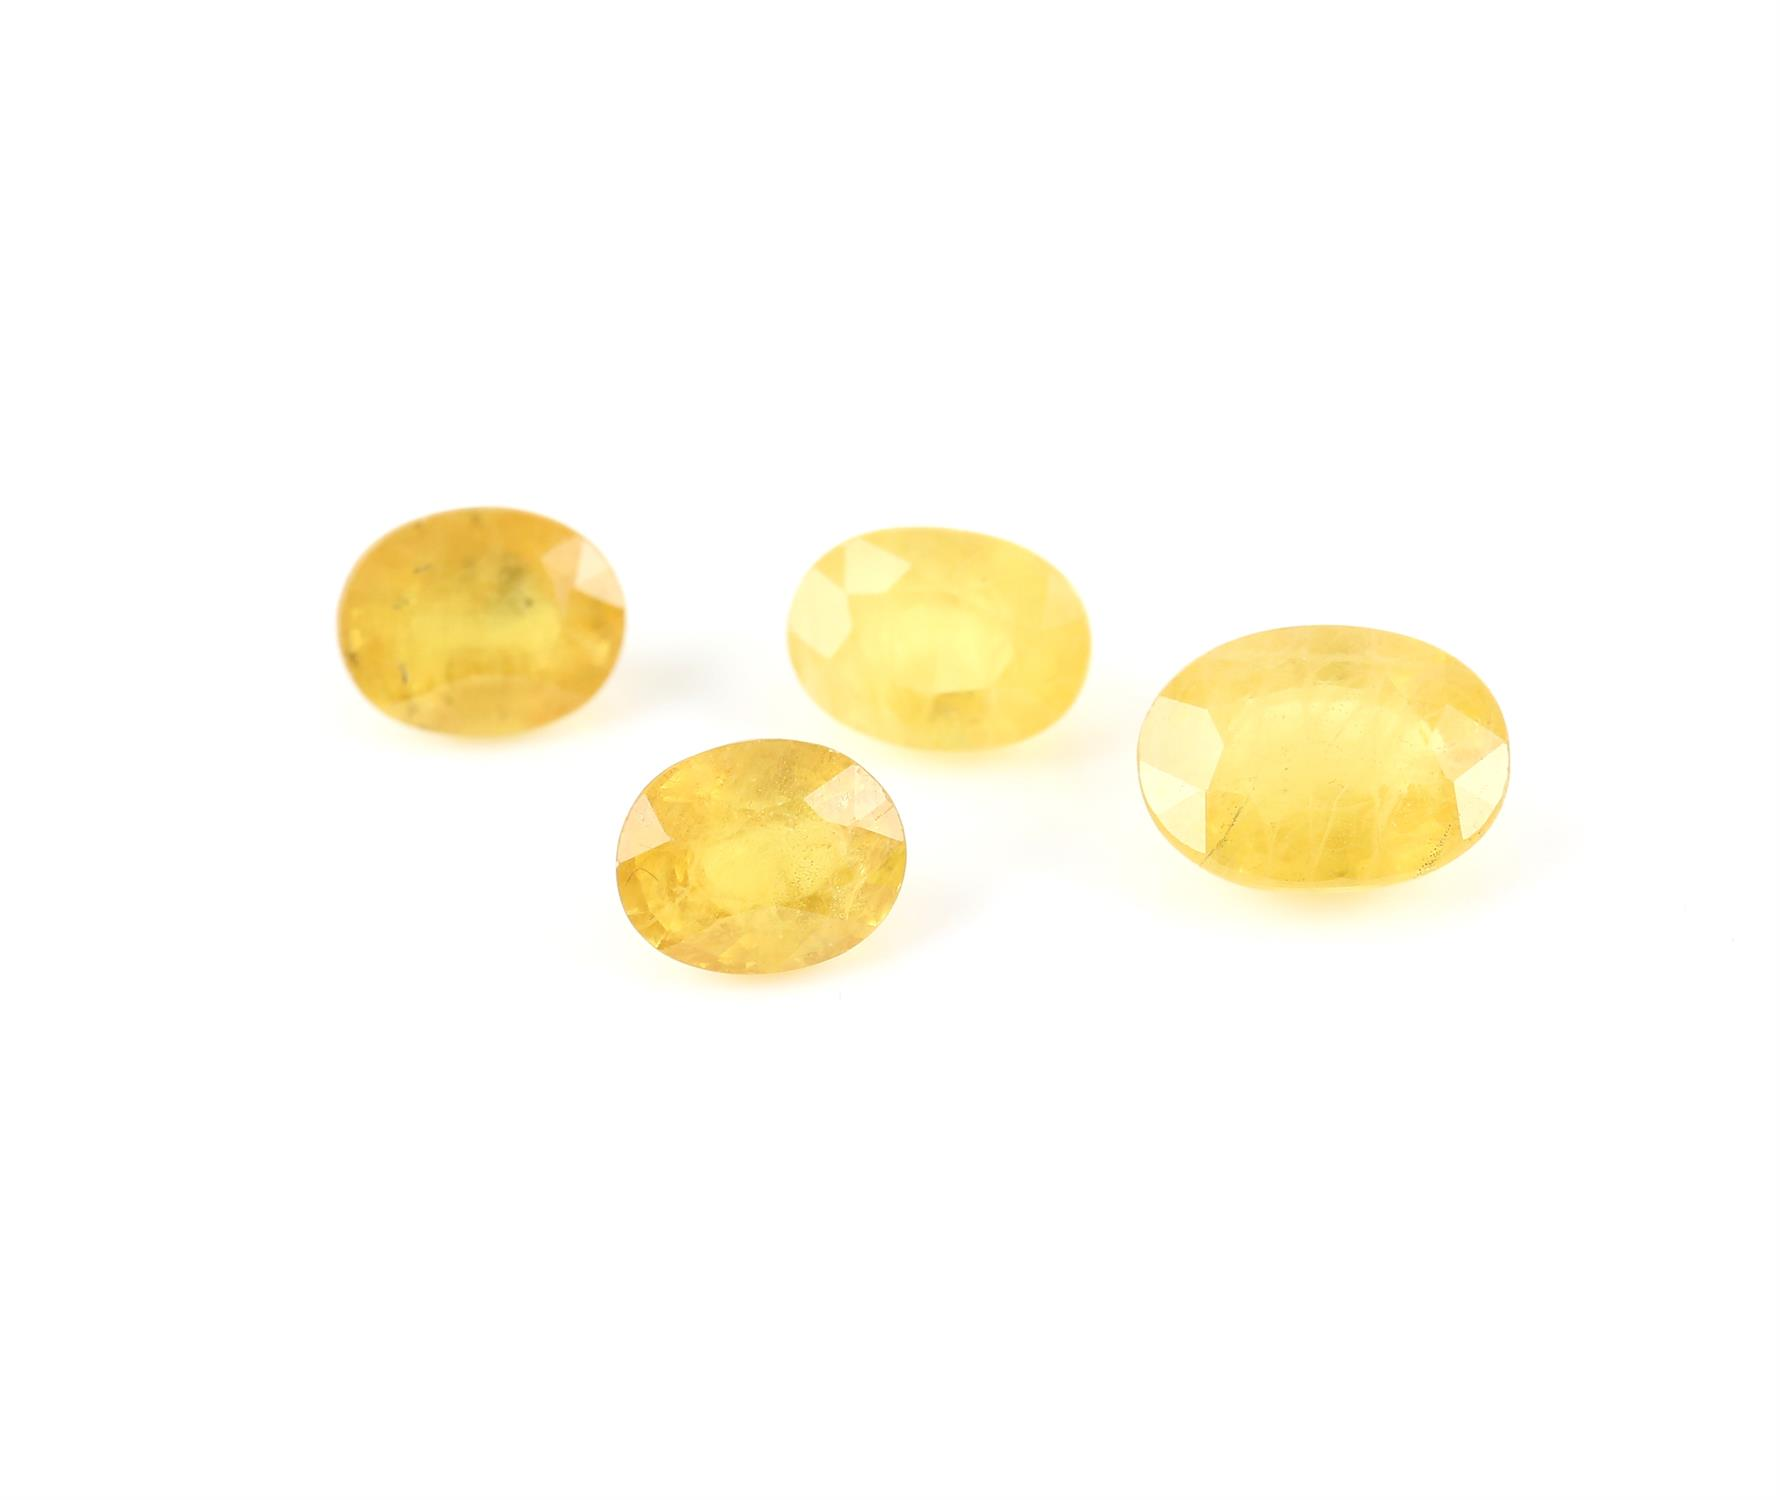 Four faceted oval cut loose synthetic yellow sapphires, weighing an estimated 3.63 carats, 2.